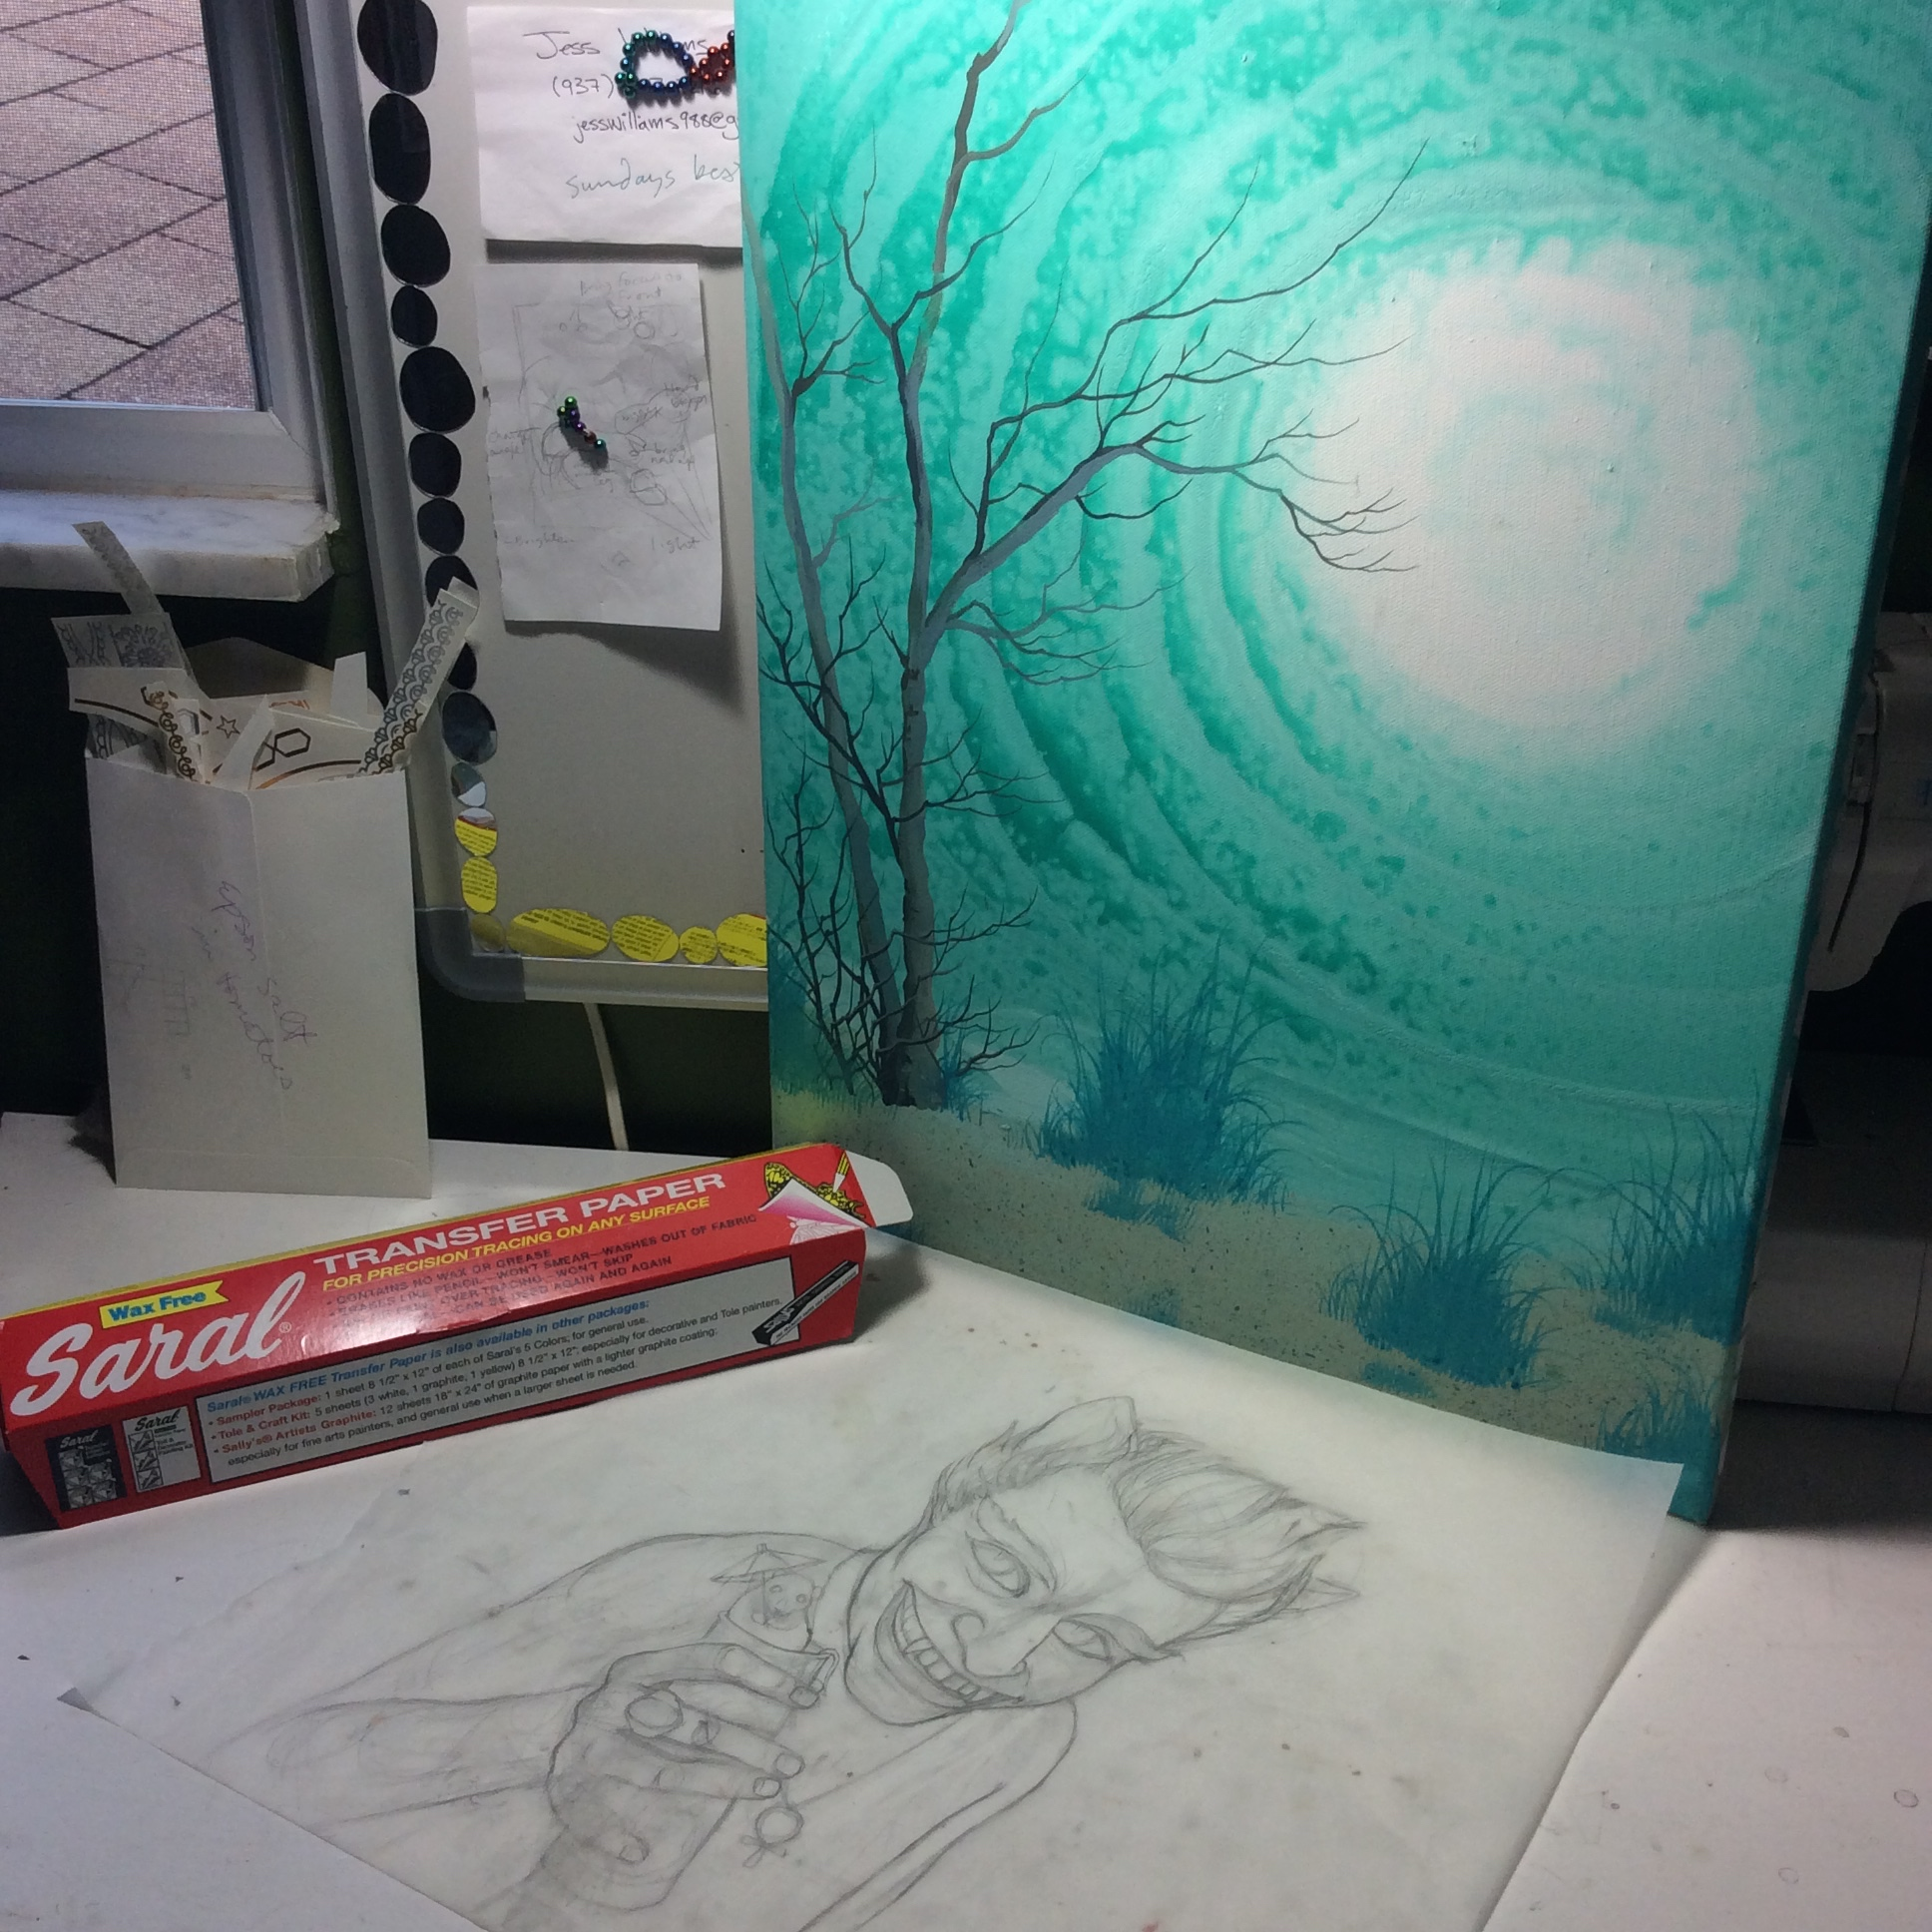 My sketch and his background.